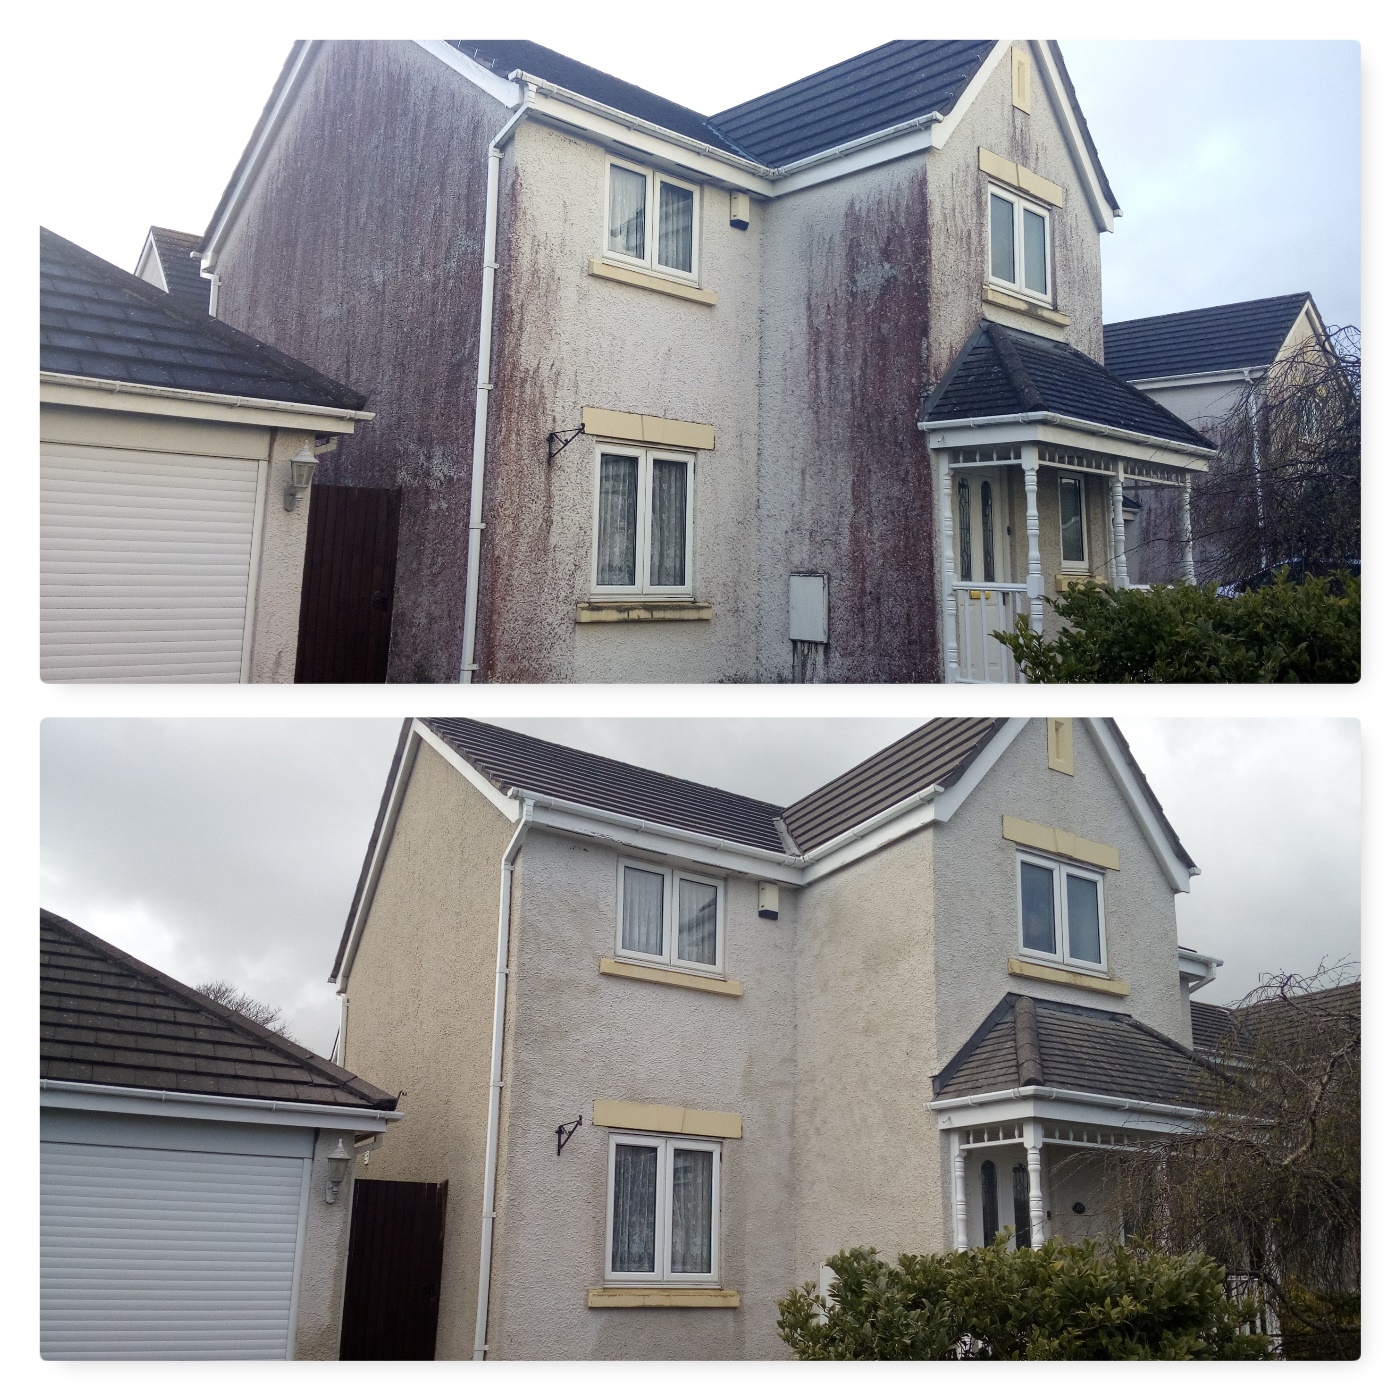 K Rend Render Cleaning in Wales